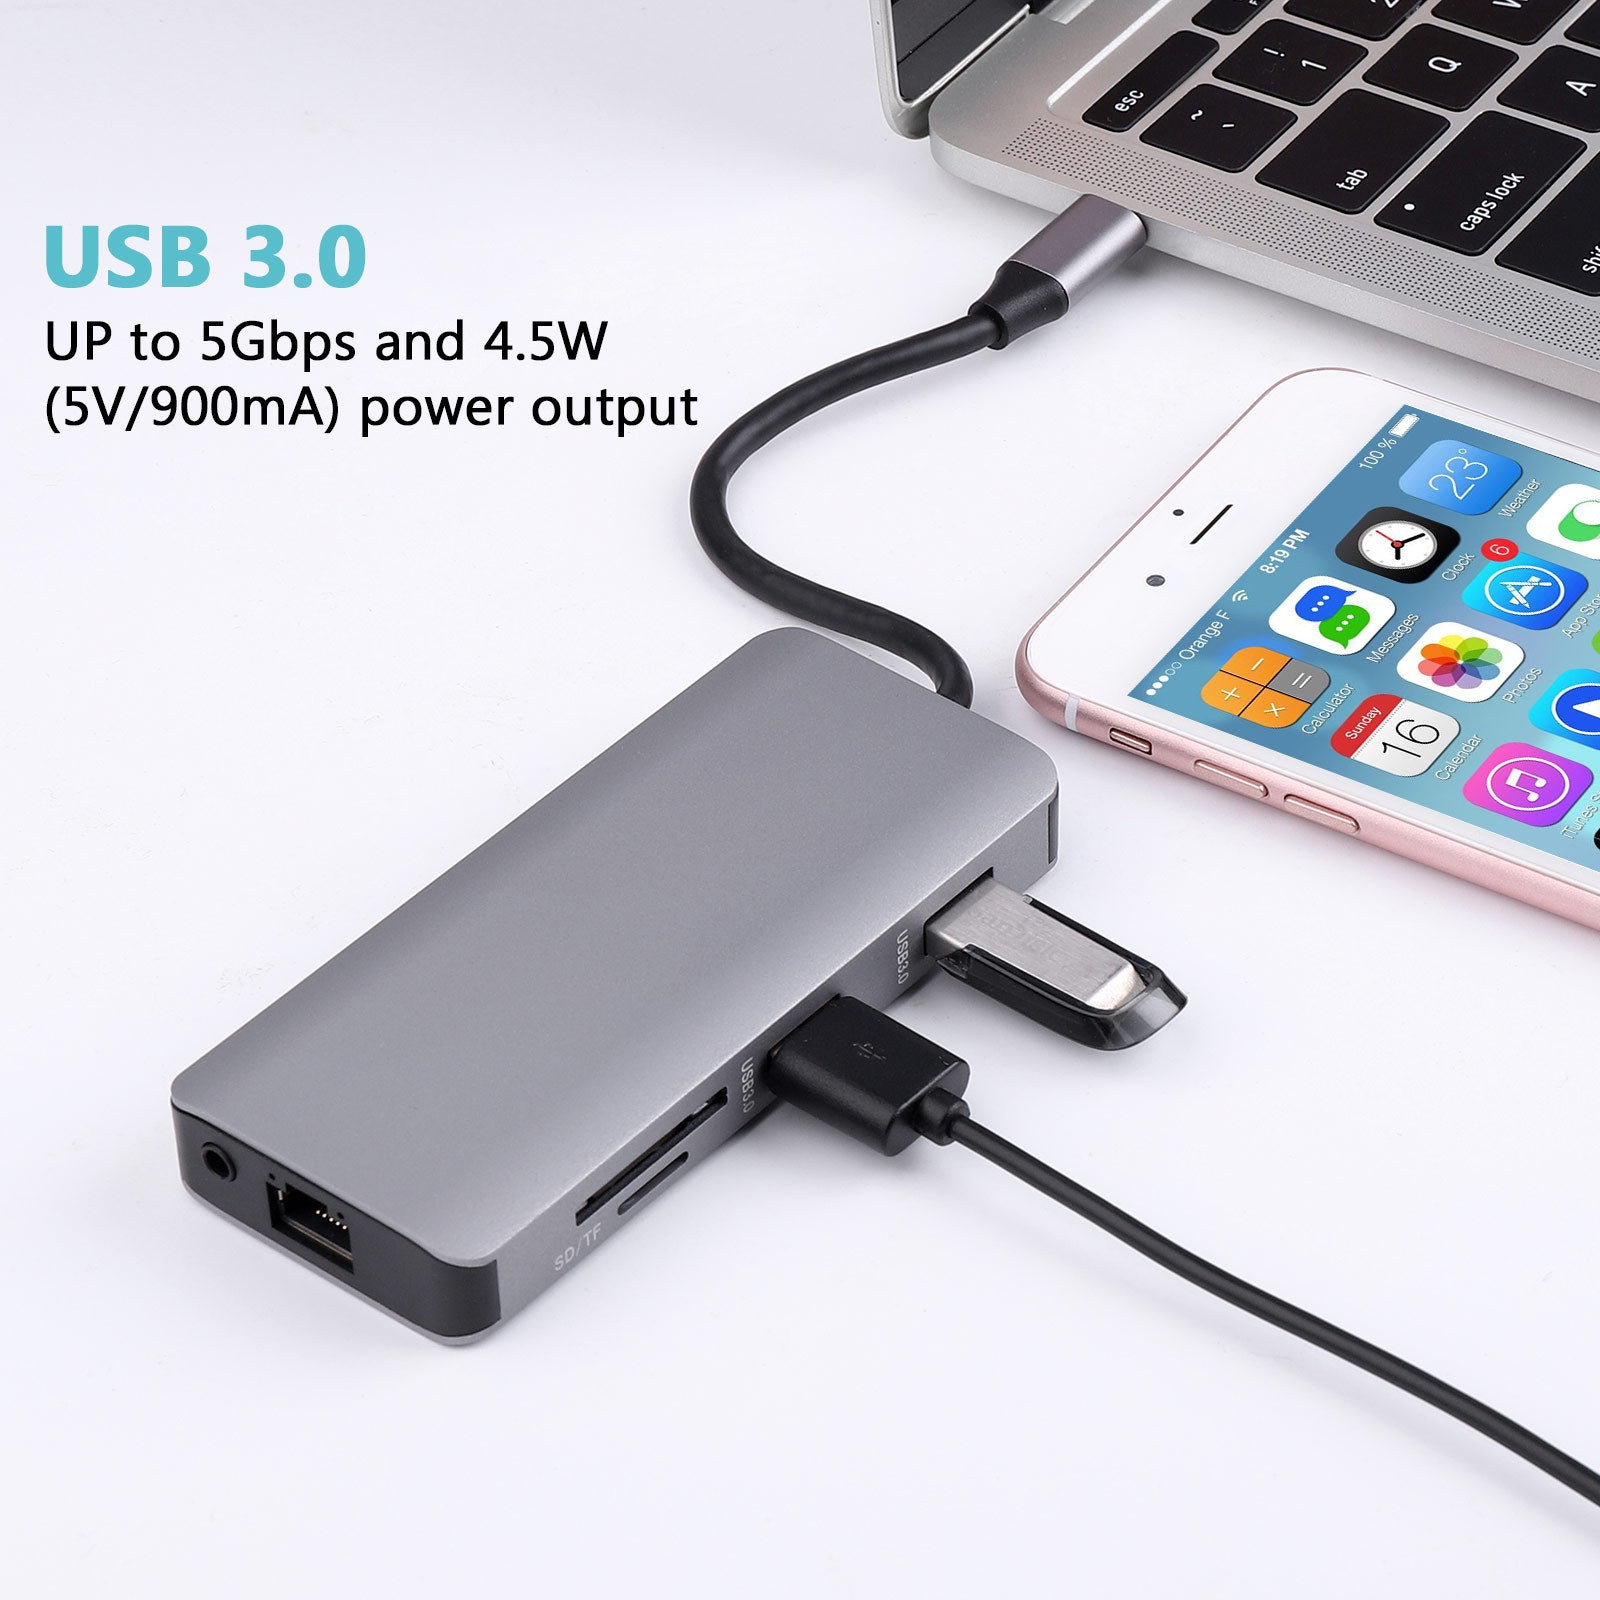 Bakeey 9 In 1 USB-C Hub Adapter With 2 * USB 3.0/100W Type-C PD Charging/4K HD Display/VGA/RJ45 Internet/Memory Card Readers